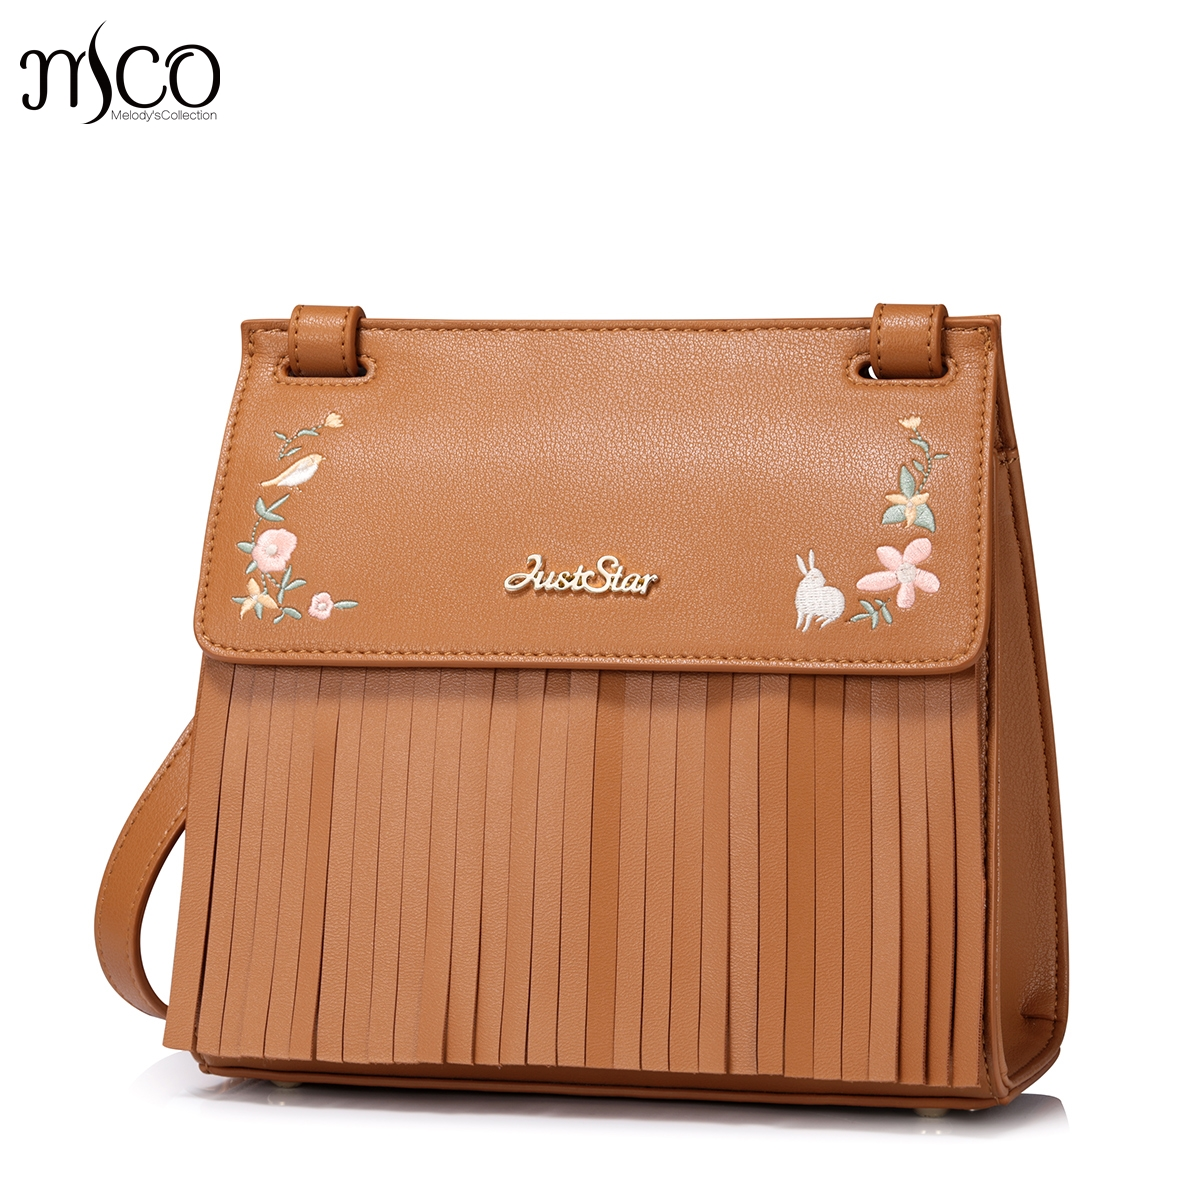 leather luxury tassels flower women bags designer Strap shoulder crossbody messenger bag Ladies Girls Sac a Main femme de marque women small bag crossbody bag shoulder messenger bags leather handbags women famous brands bolsa sac a main femme de marque